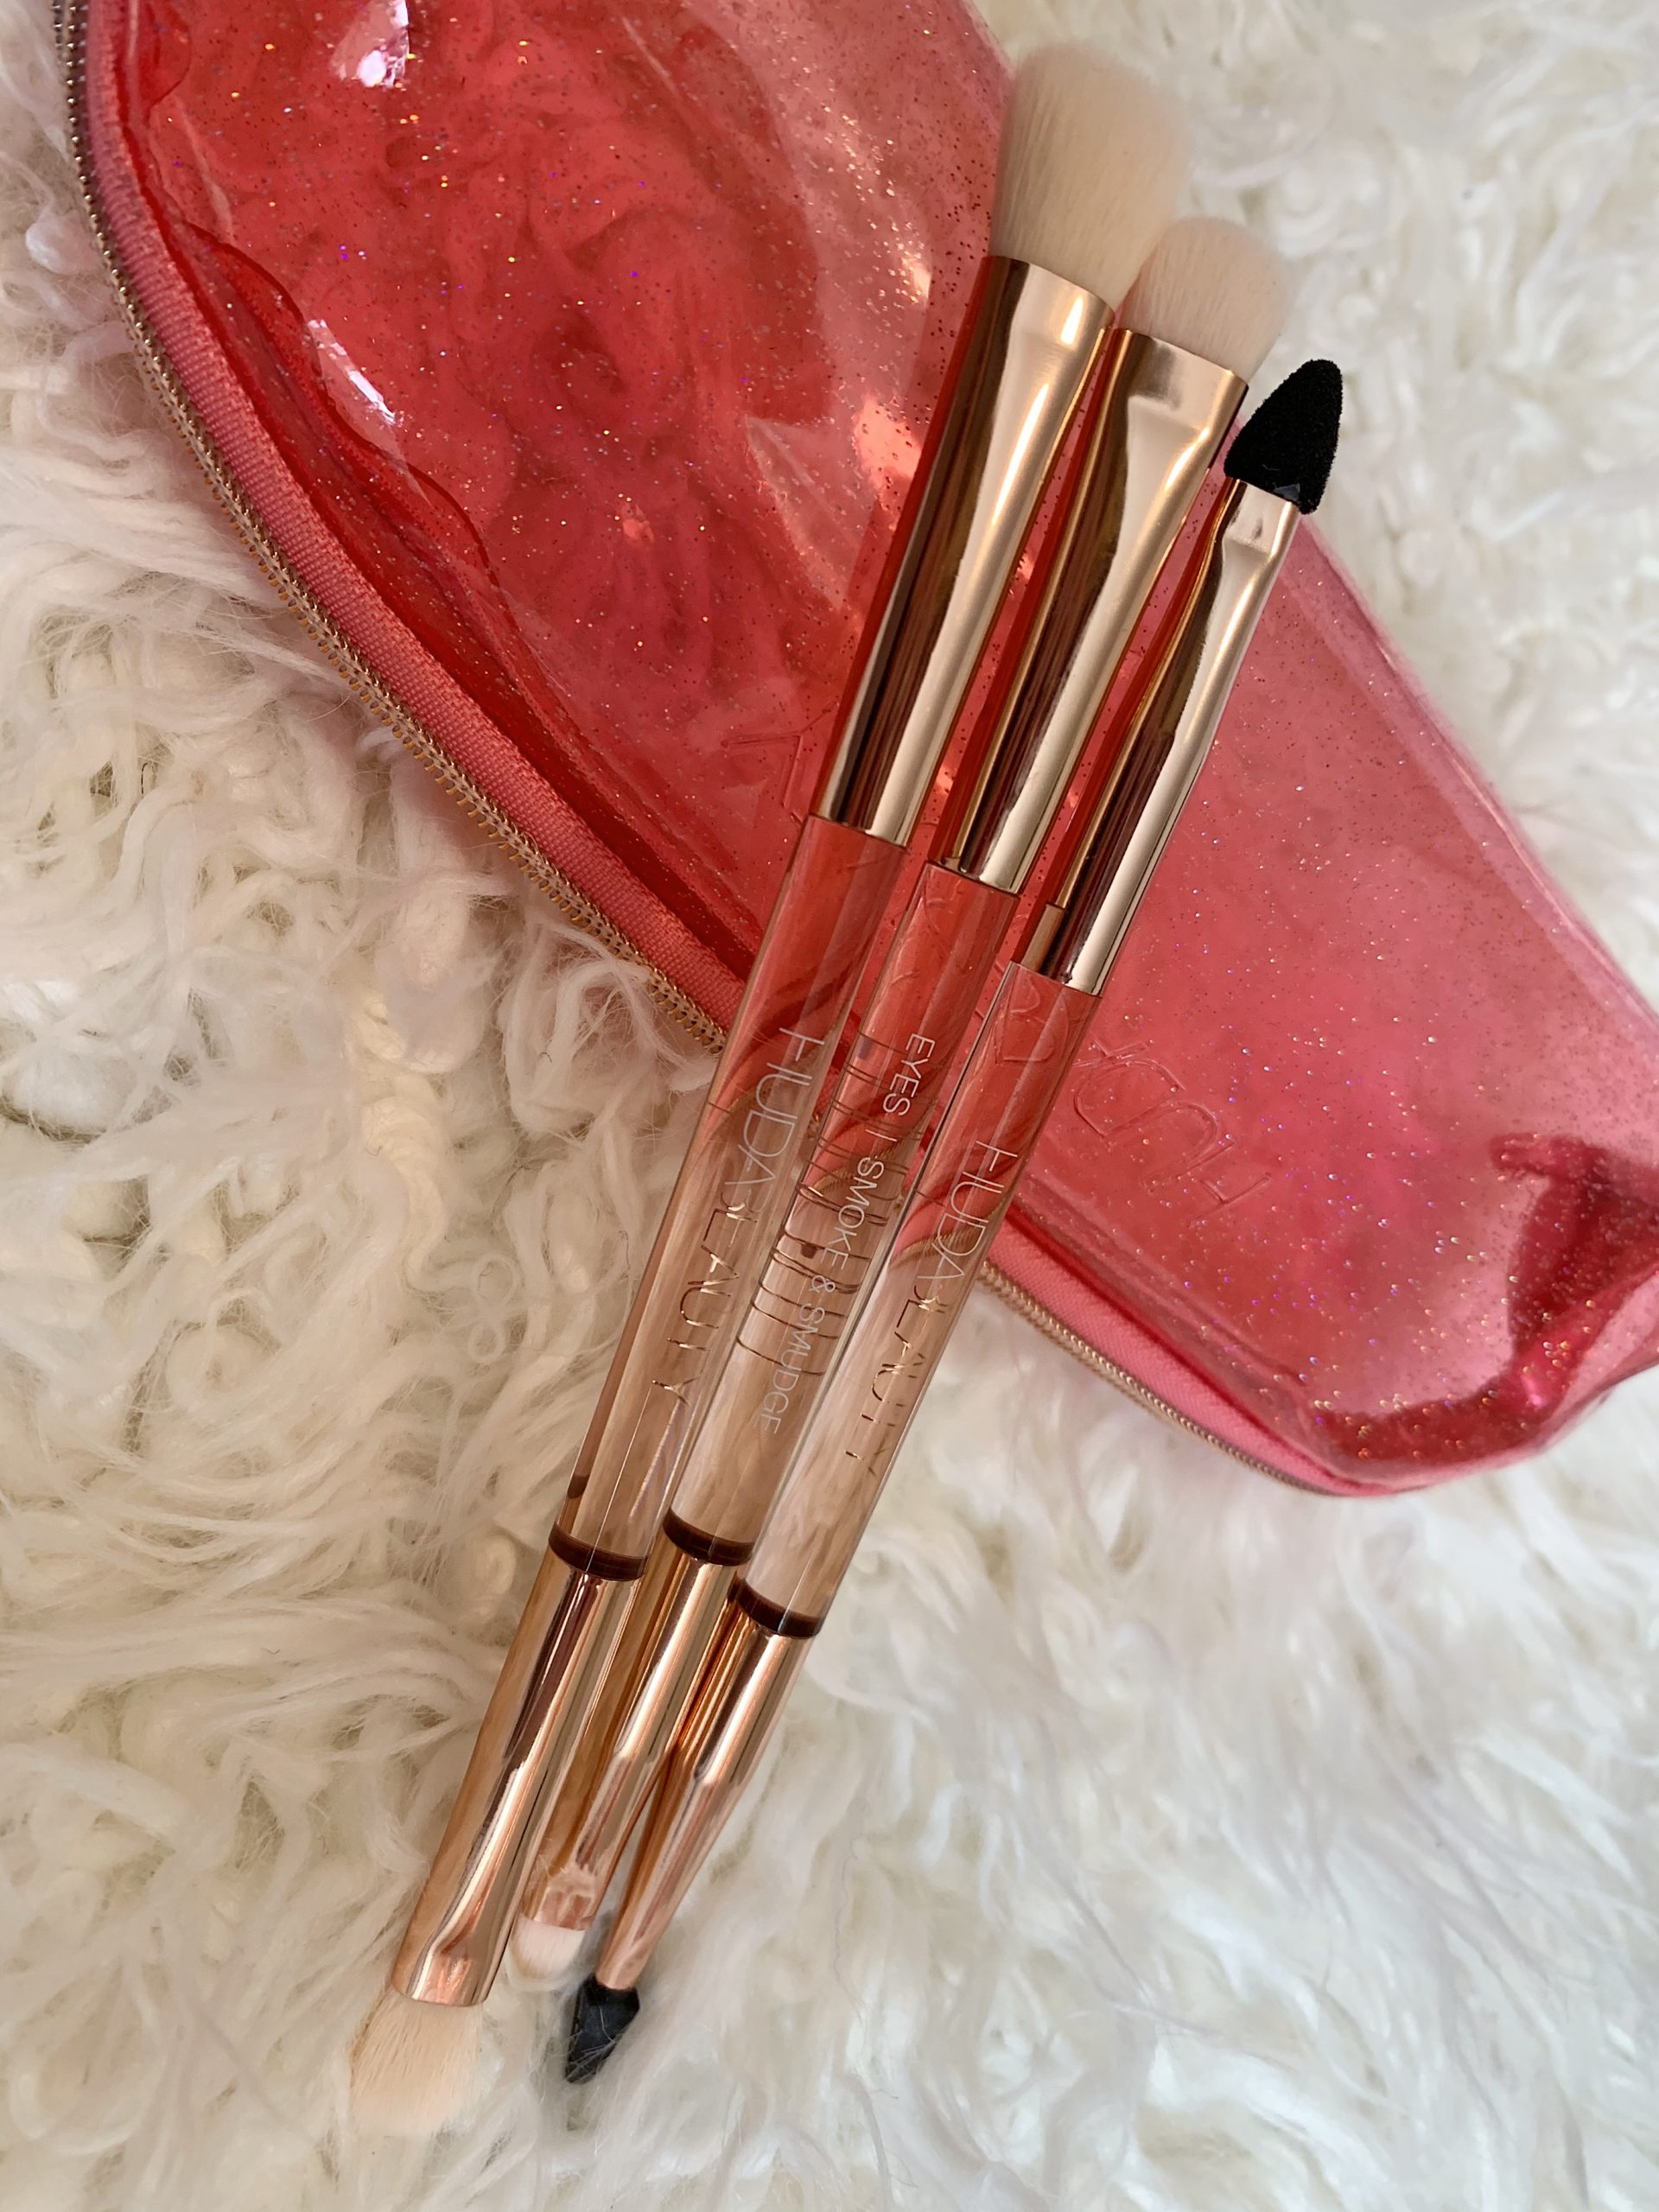 Huda Beauty The New Nude Brush Set